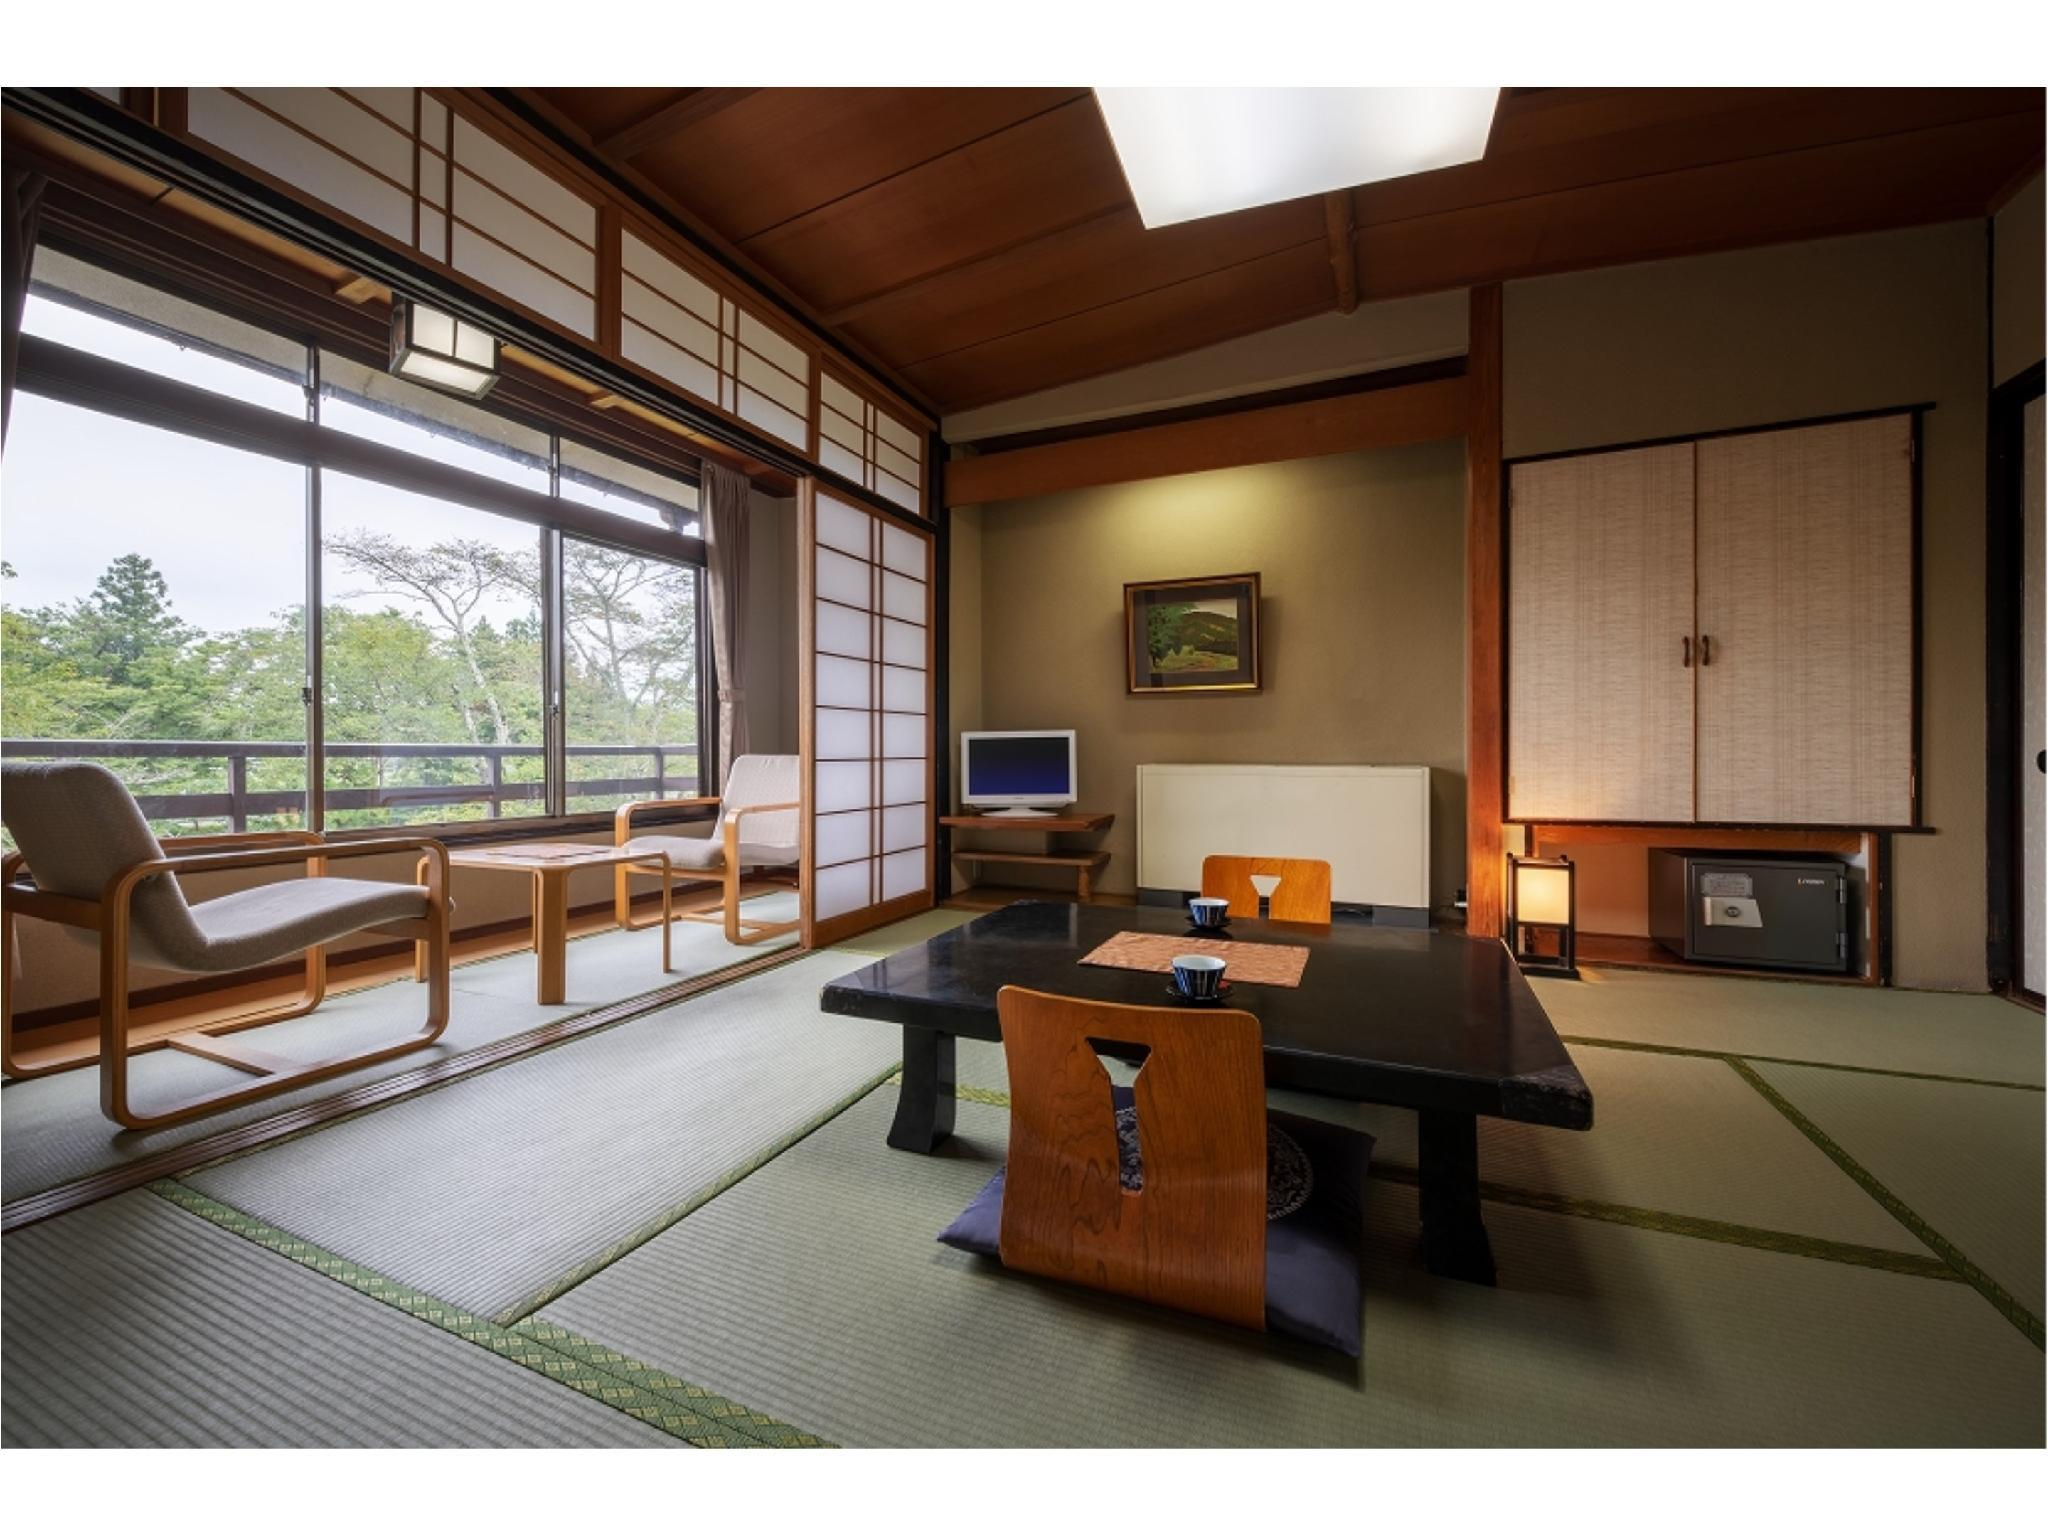 彌生亭 和式房※有廁所無浴室 (Japanese-style Room (Yayoitei Wing) *Has toilet, no bath in room)